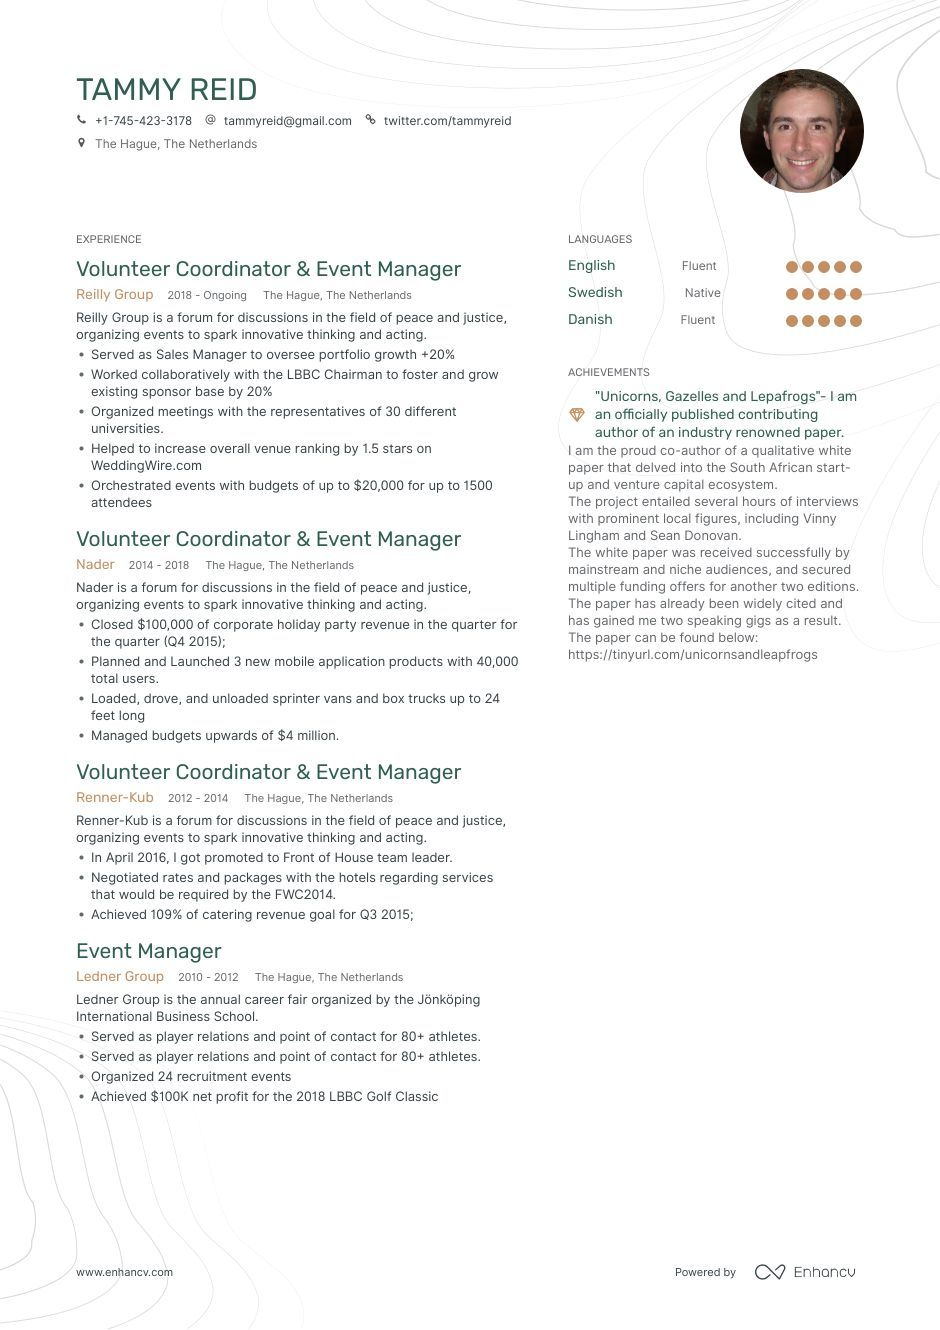 Download event manager resume example for 2020 with